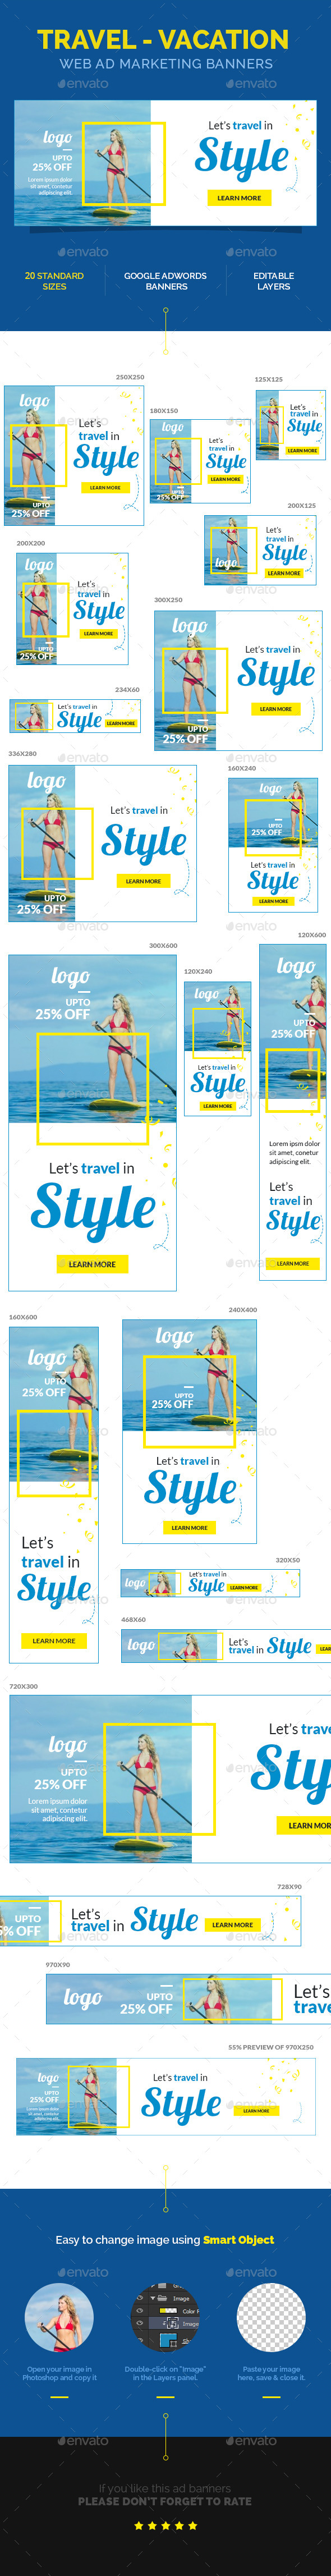 GraphicRiver Travel Vacation Web Ad Marketing Banners 11022465